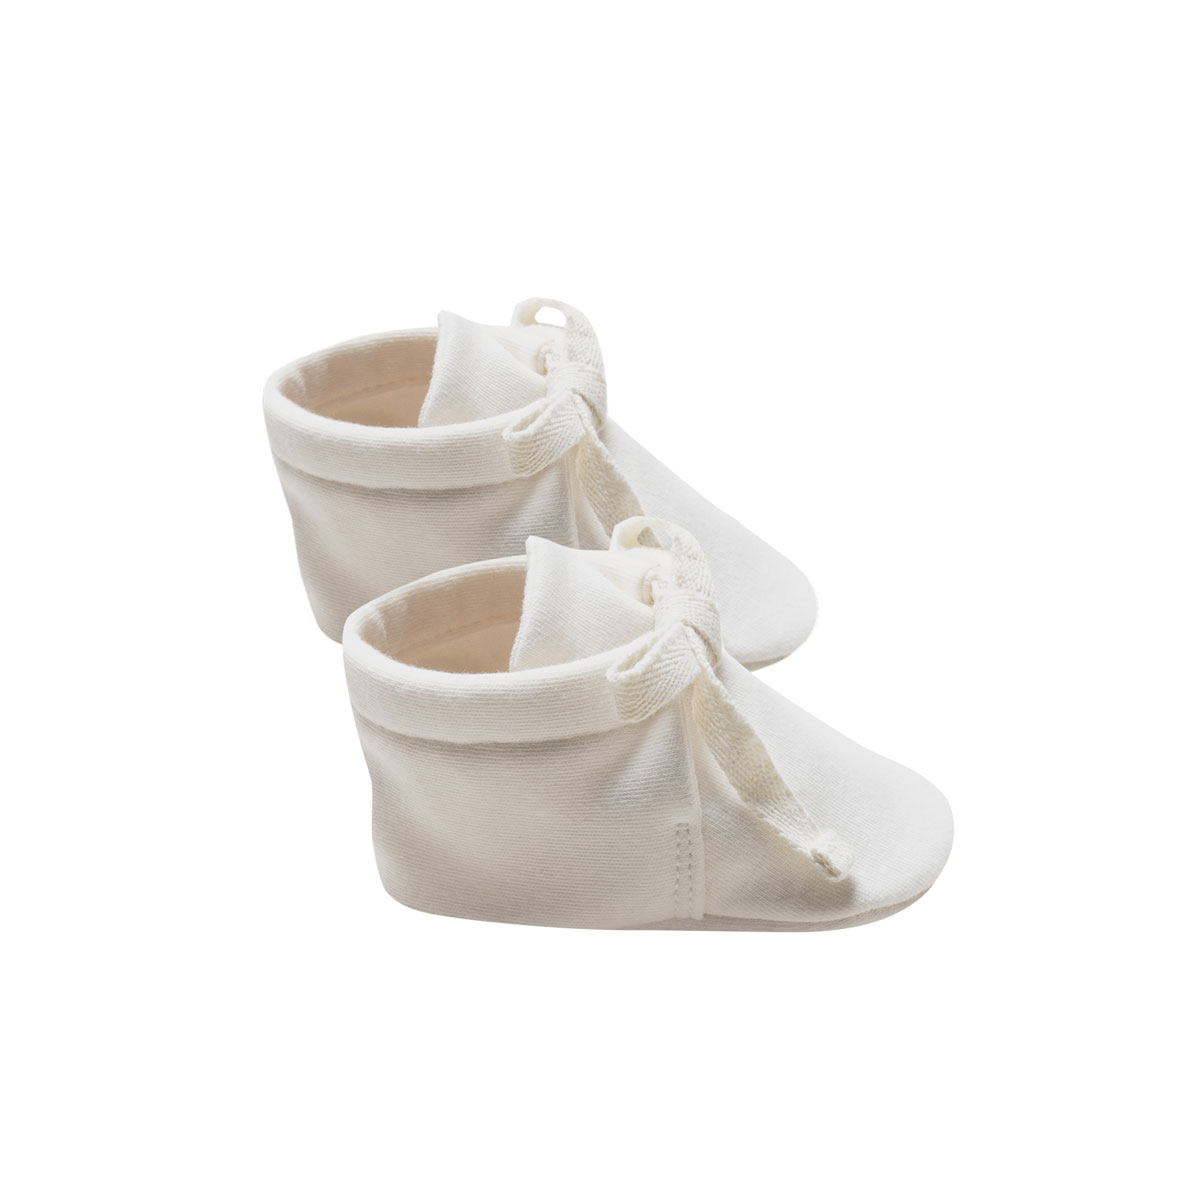 Quincy Mae SS19 Booties Baby Ivory